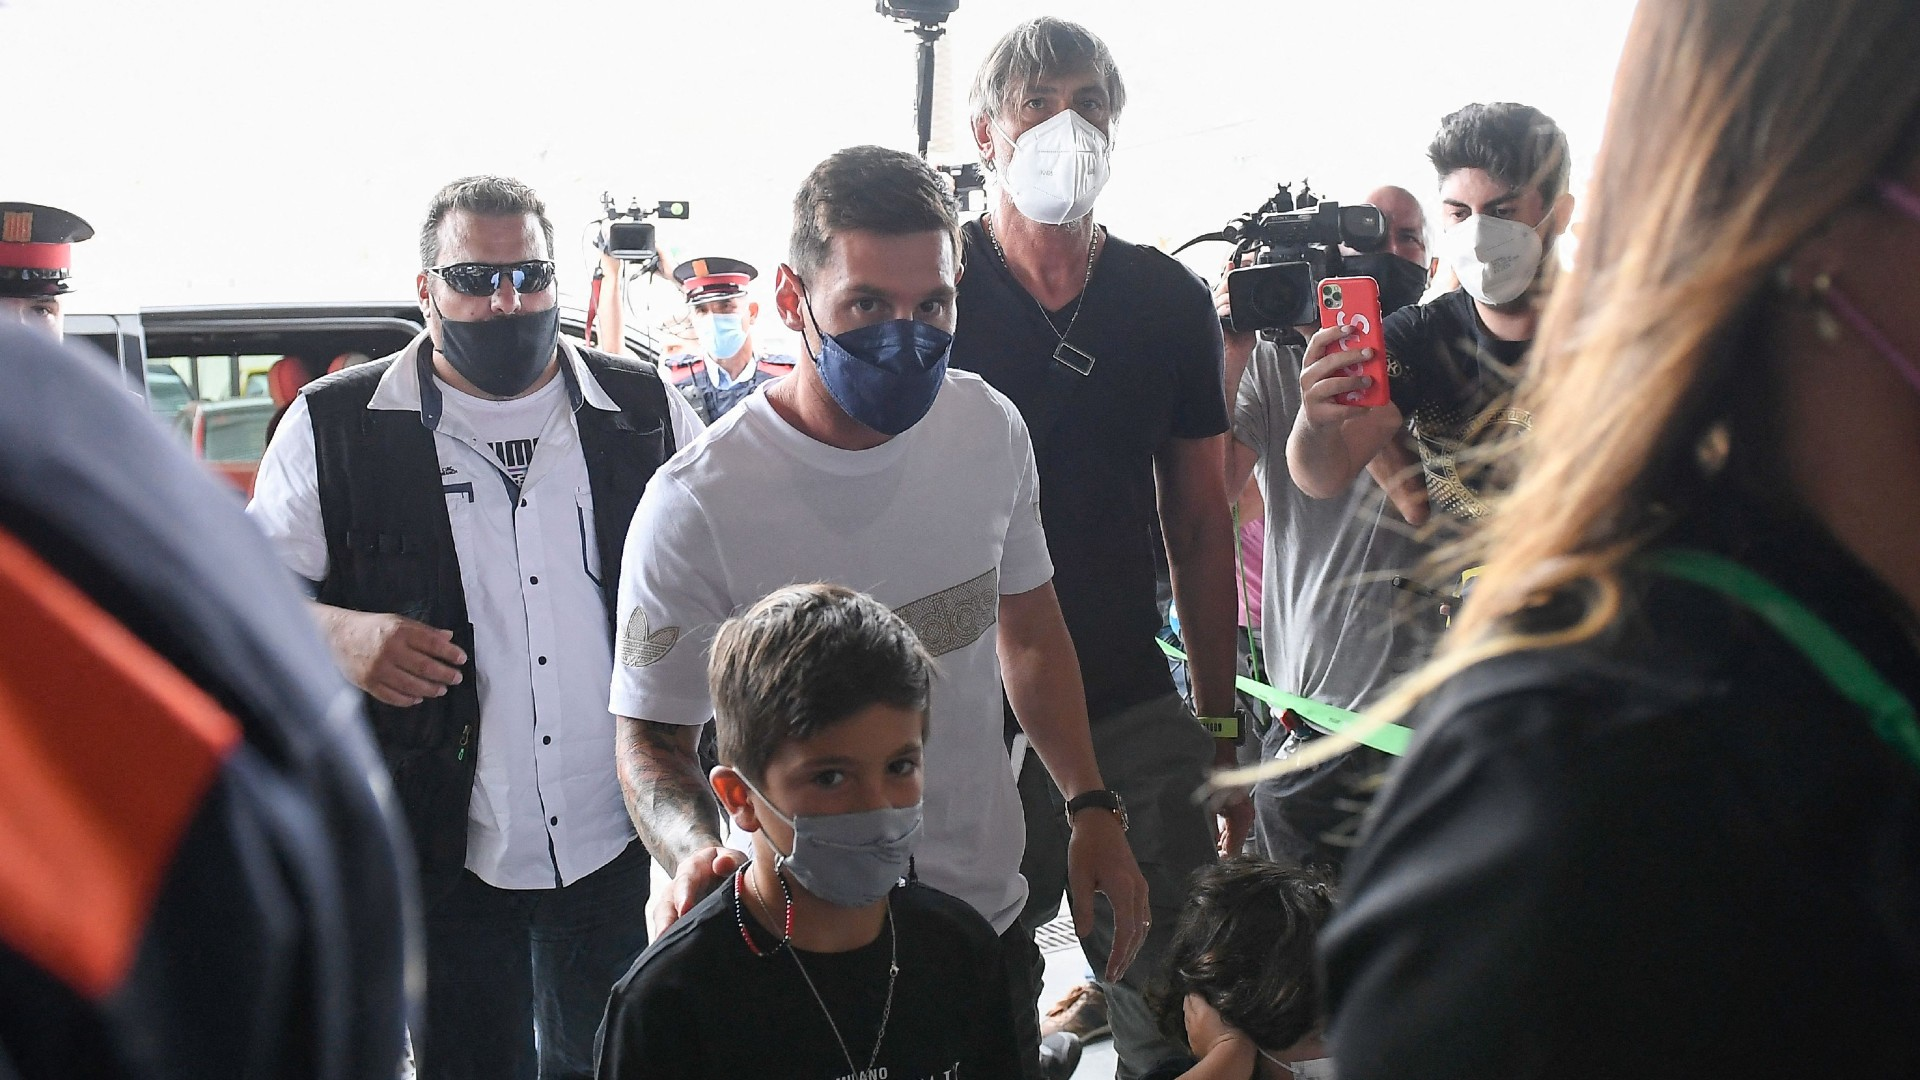 Messi agrees two-year contract with PSG and is travelling to Paris to undergo medical following Barcelona exit